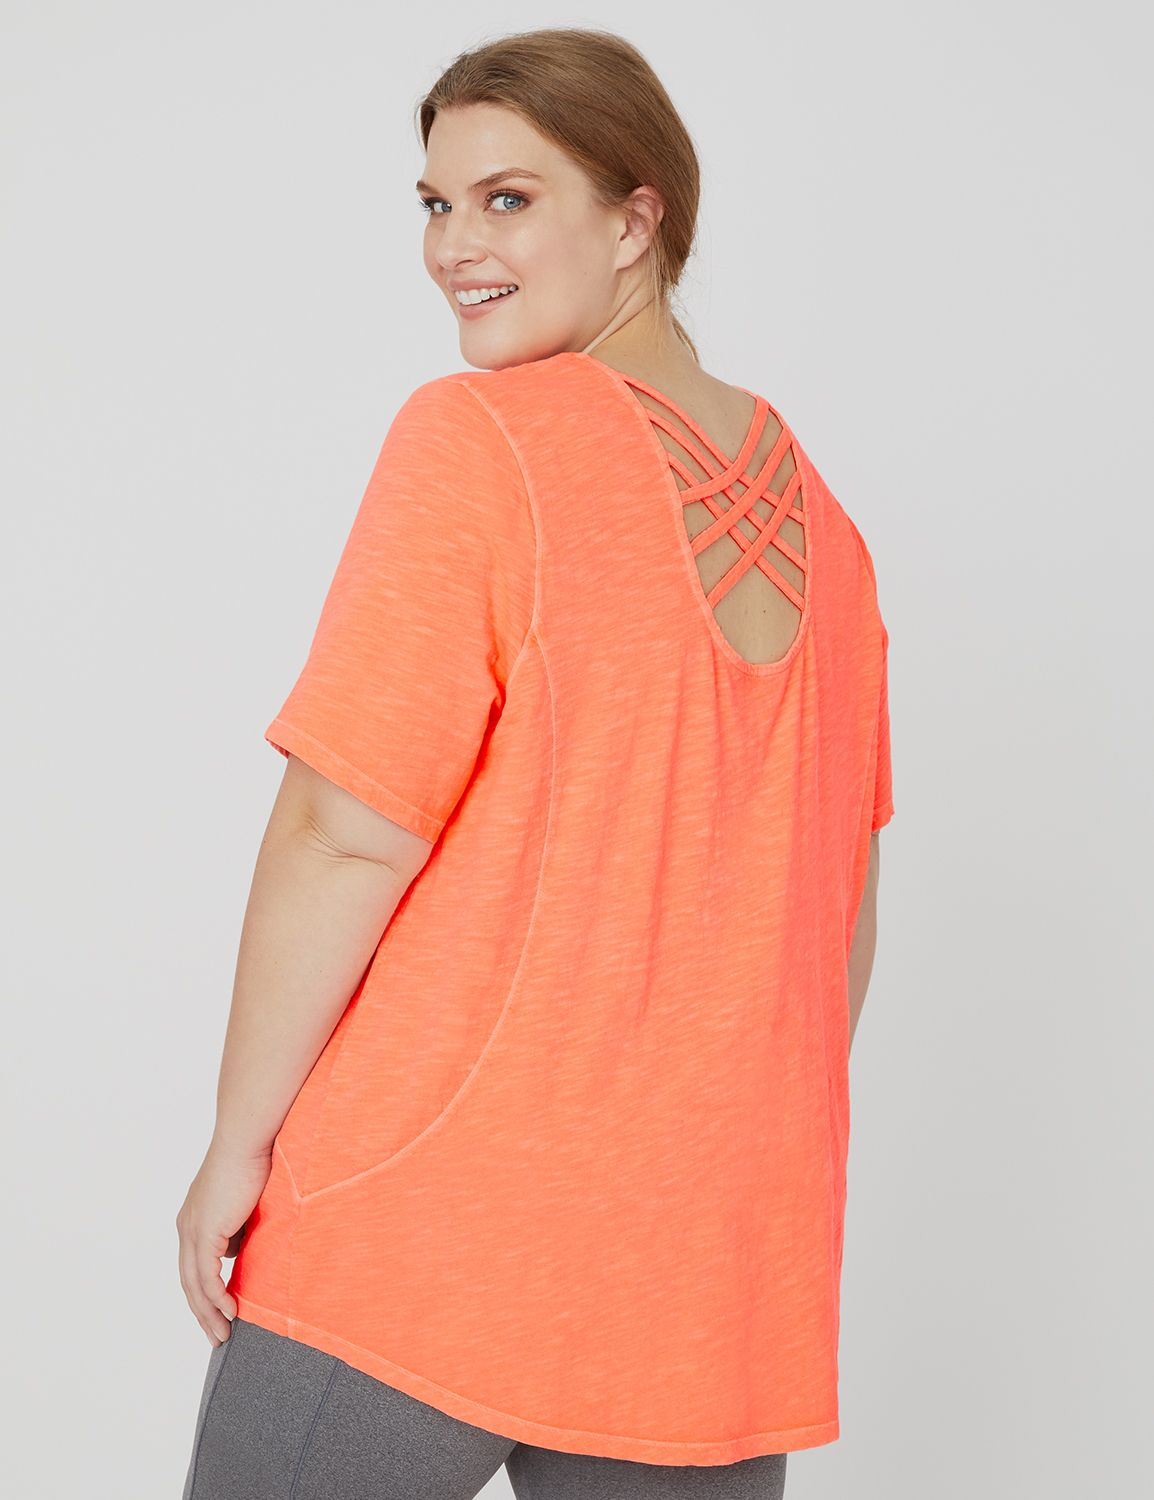 Short-Sleeve Crisscross Active Tee 1088551 SS Criss-Cross Back Top MP-300097730